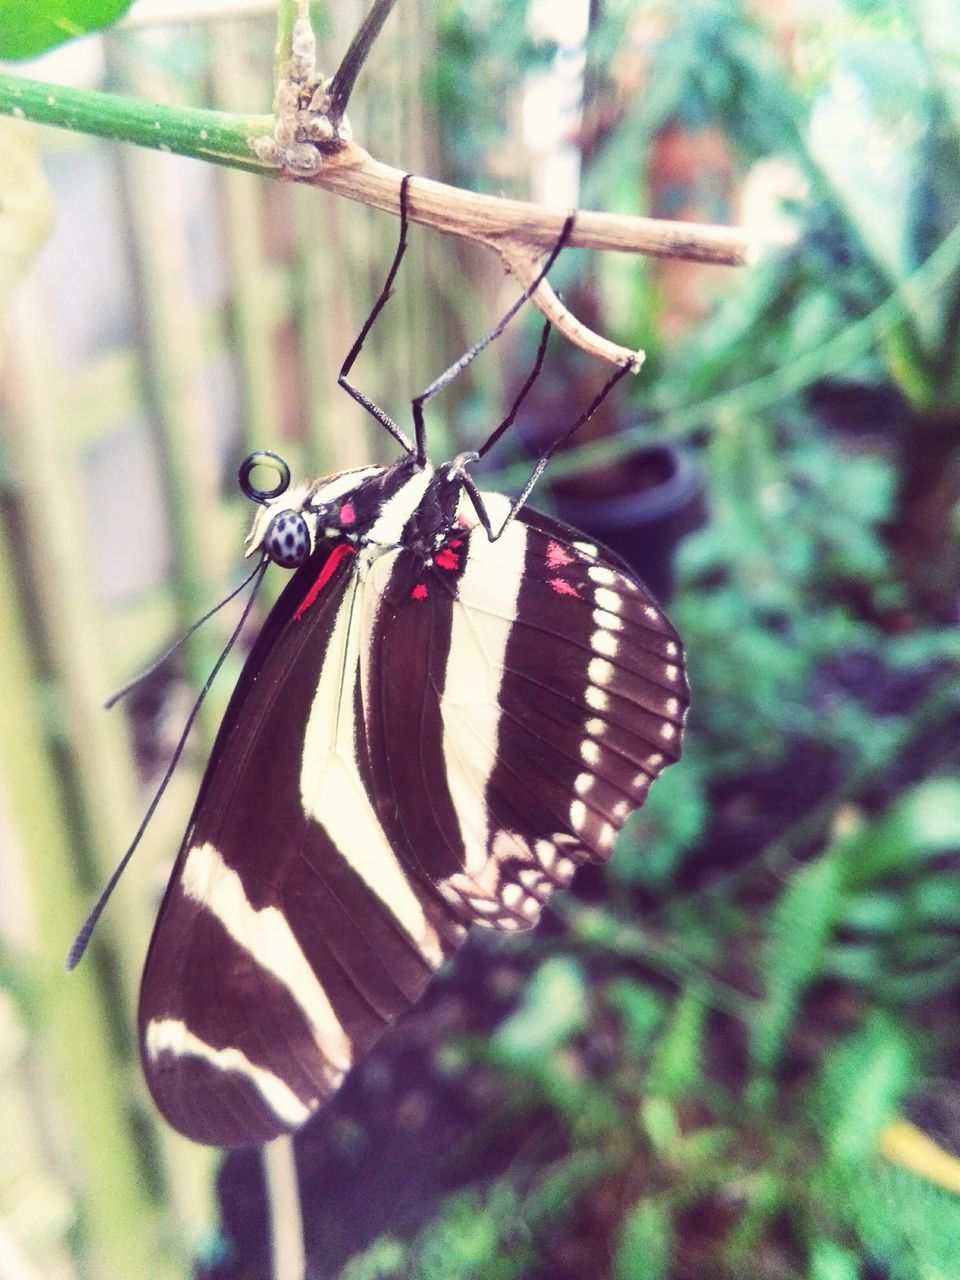 insect, animals in the wild, animal themes, one animal, butterfly - insect, wildlife, animal wildlife, no people, butterfly, focus on foreground, close-up, day, outdoors, nature, perching, spread wings